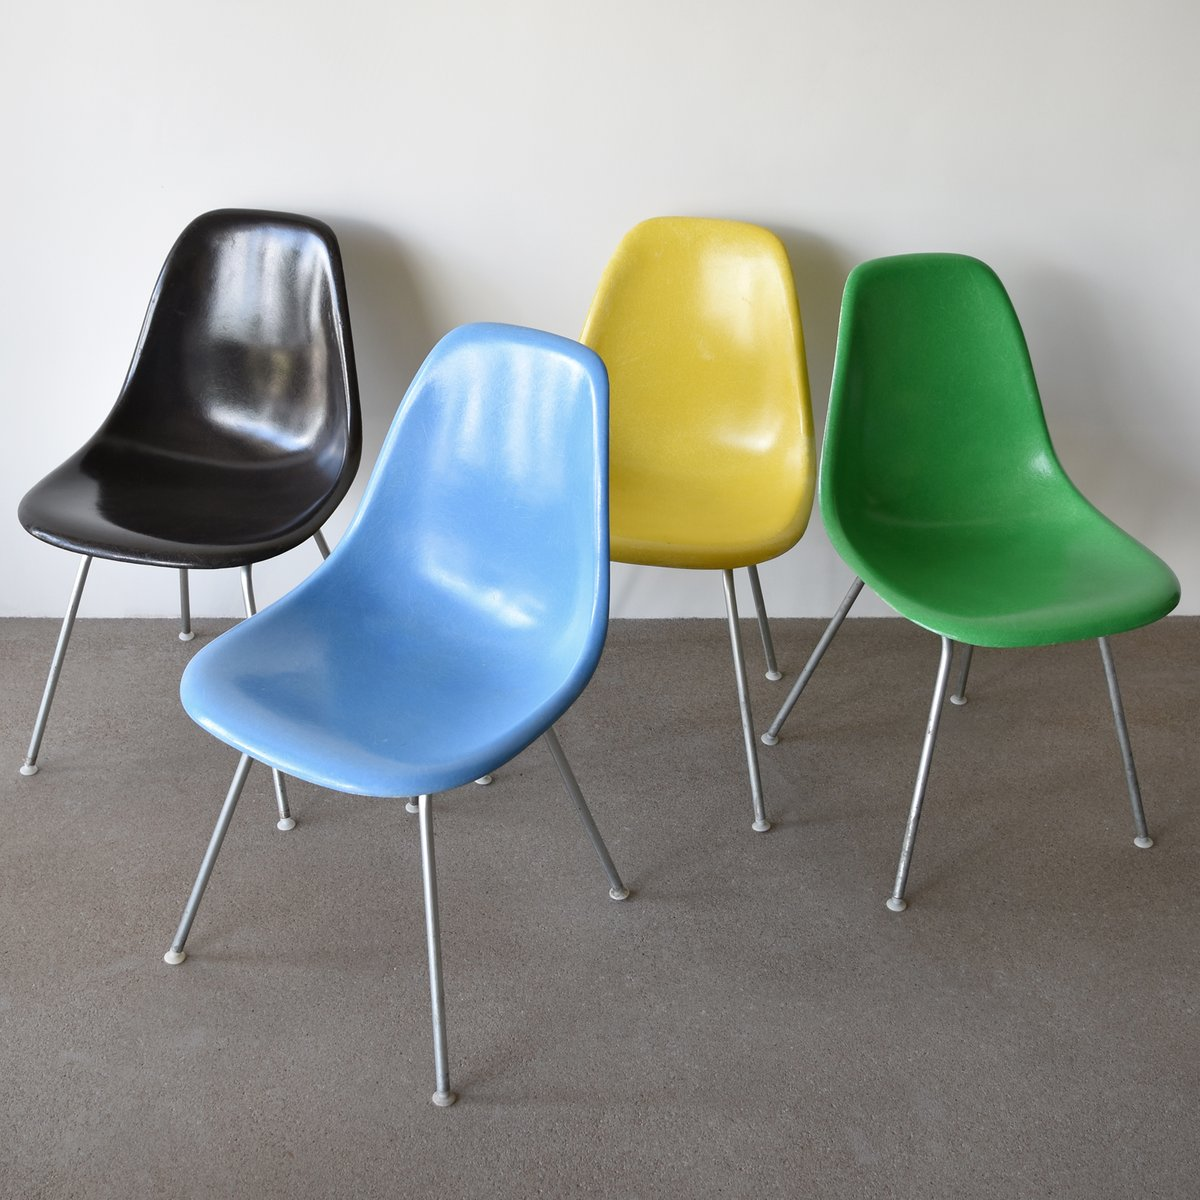 Vintage DSX Chairs by Charles and Ray Eames for Herman